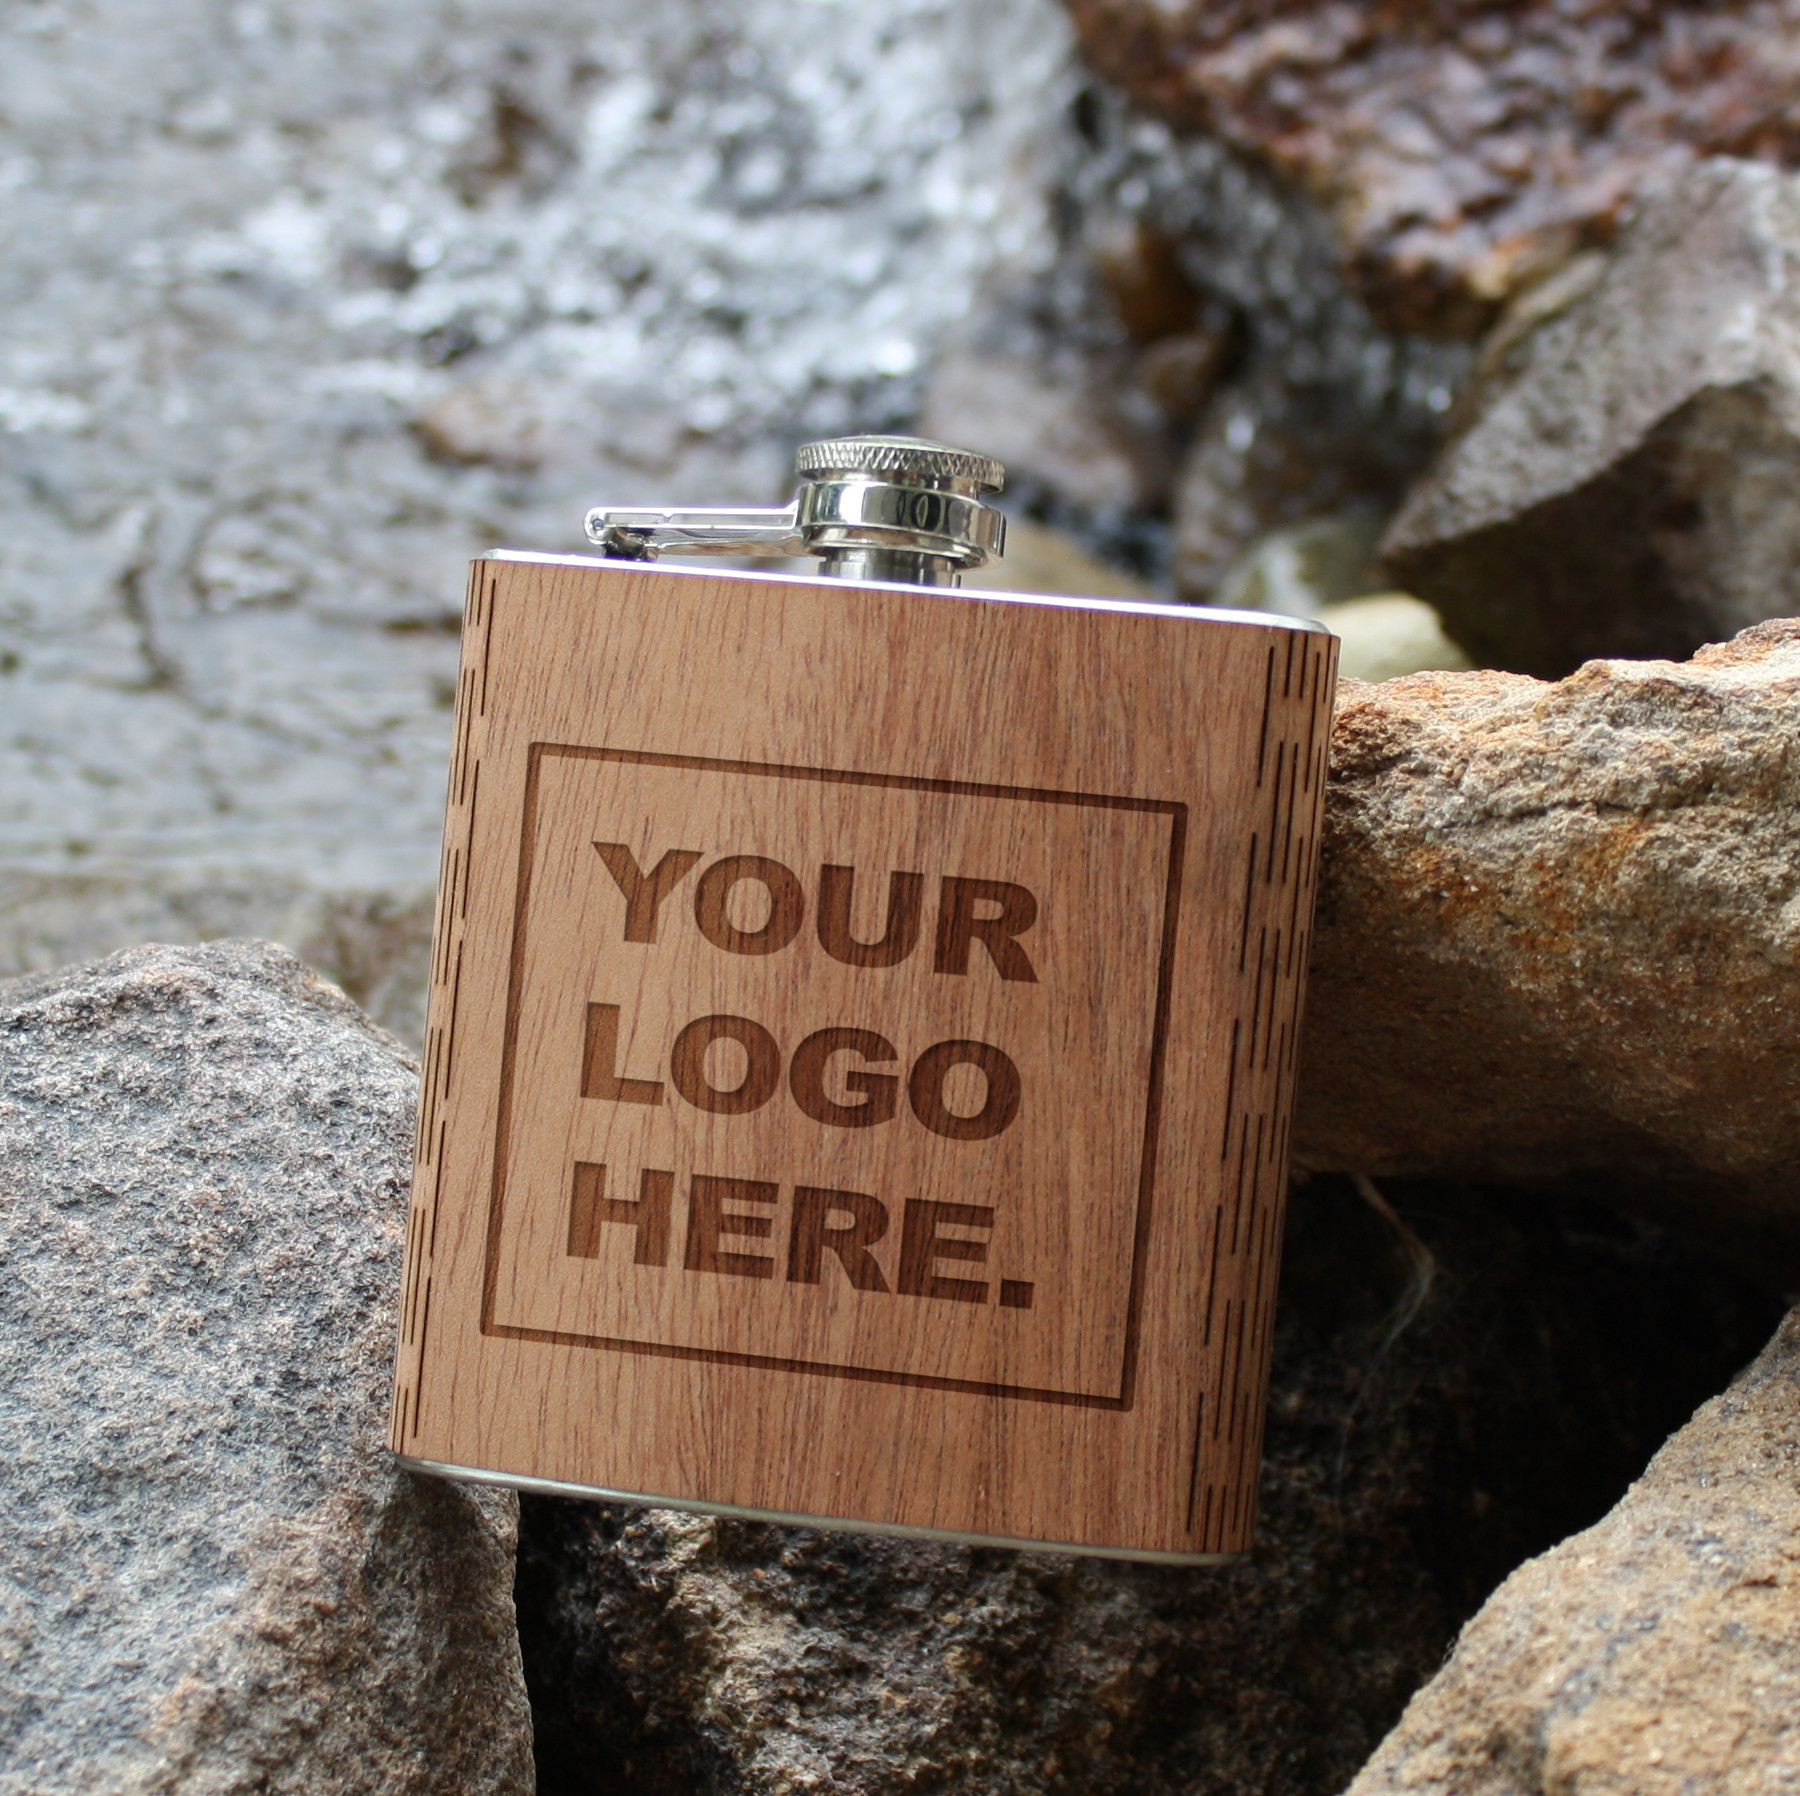 6 oz. wooden hip flasks